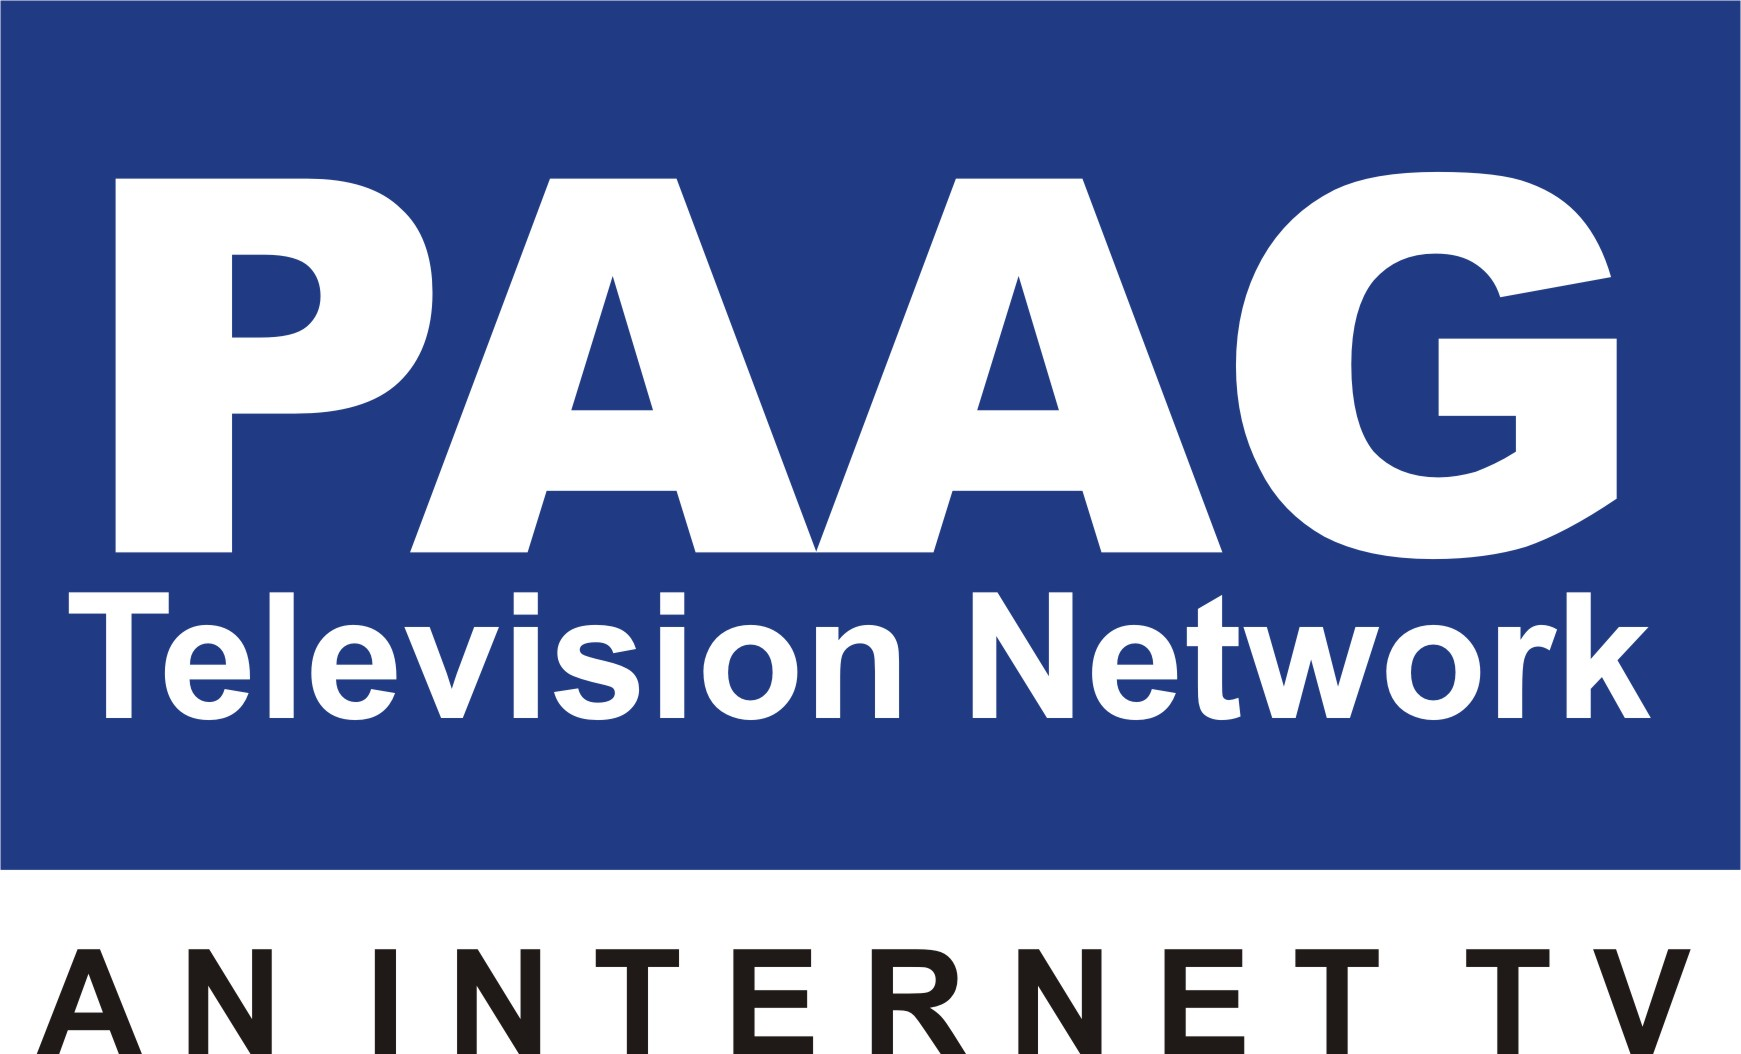 PAAG TELEVISION NETWORK (PVT) LTD